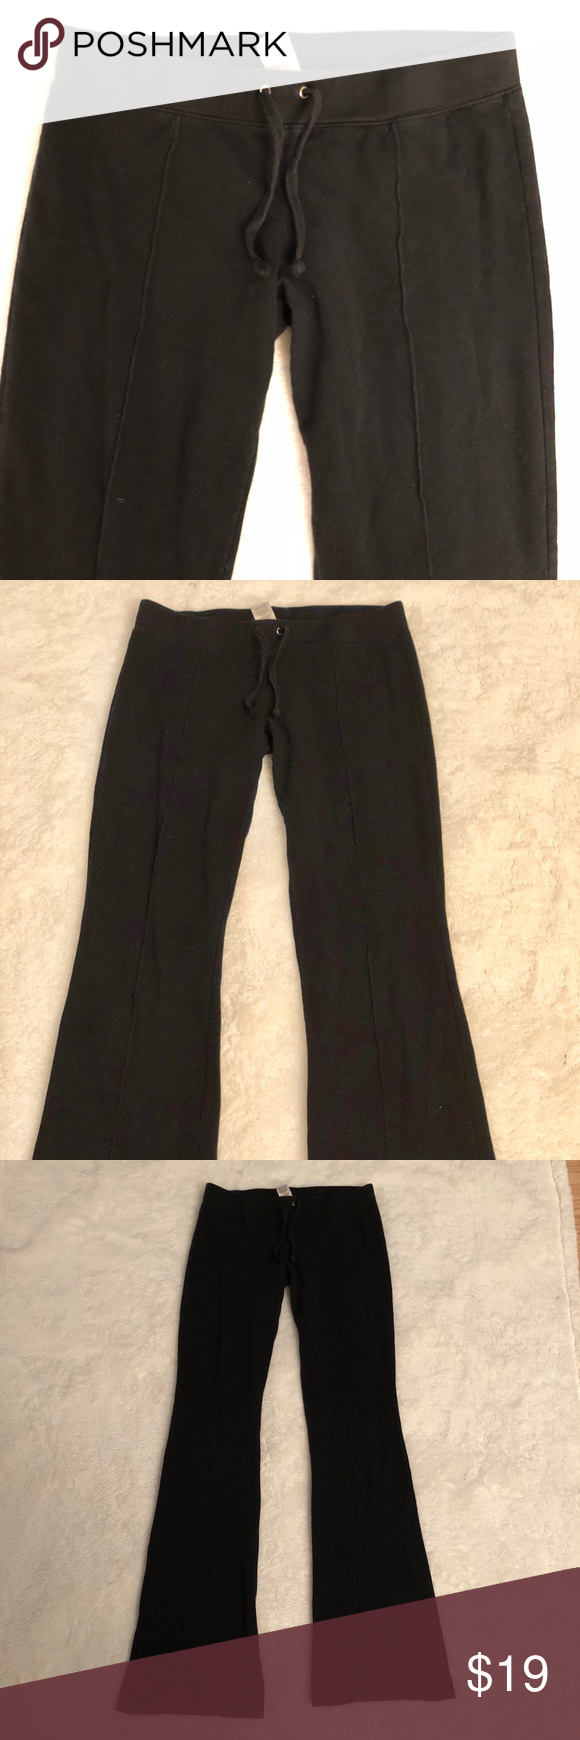 Juicy Couture bootcut lounge pants Juicy Couture black lounge pants with boot cut flare and pintuck seam down front. Has elastic waistband with drawstring. 95% cotton / 5% spandex - super soft and stretchy! Some signs of wear on the bottom in the back but otherwise excellent condition. Size P,  equivalent to an XS Juicy Couture Pants Leggings